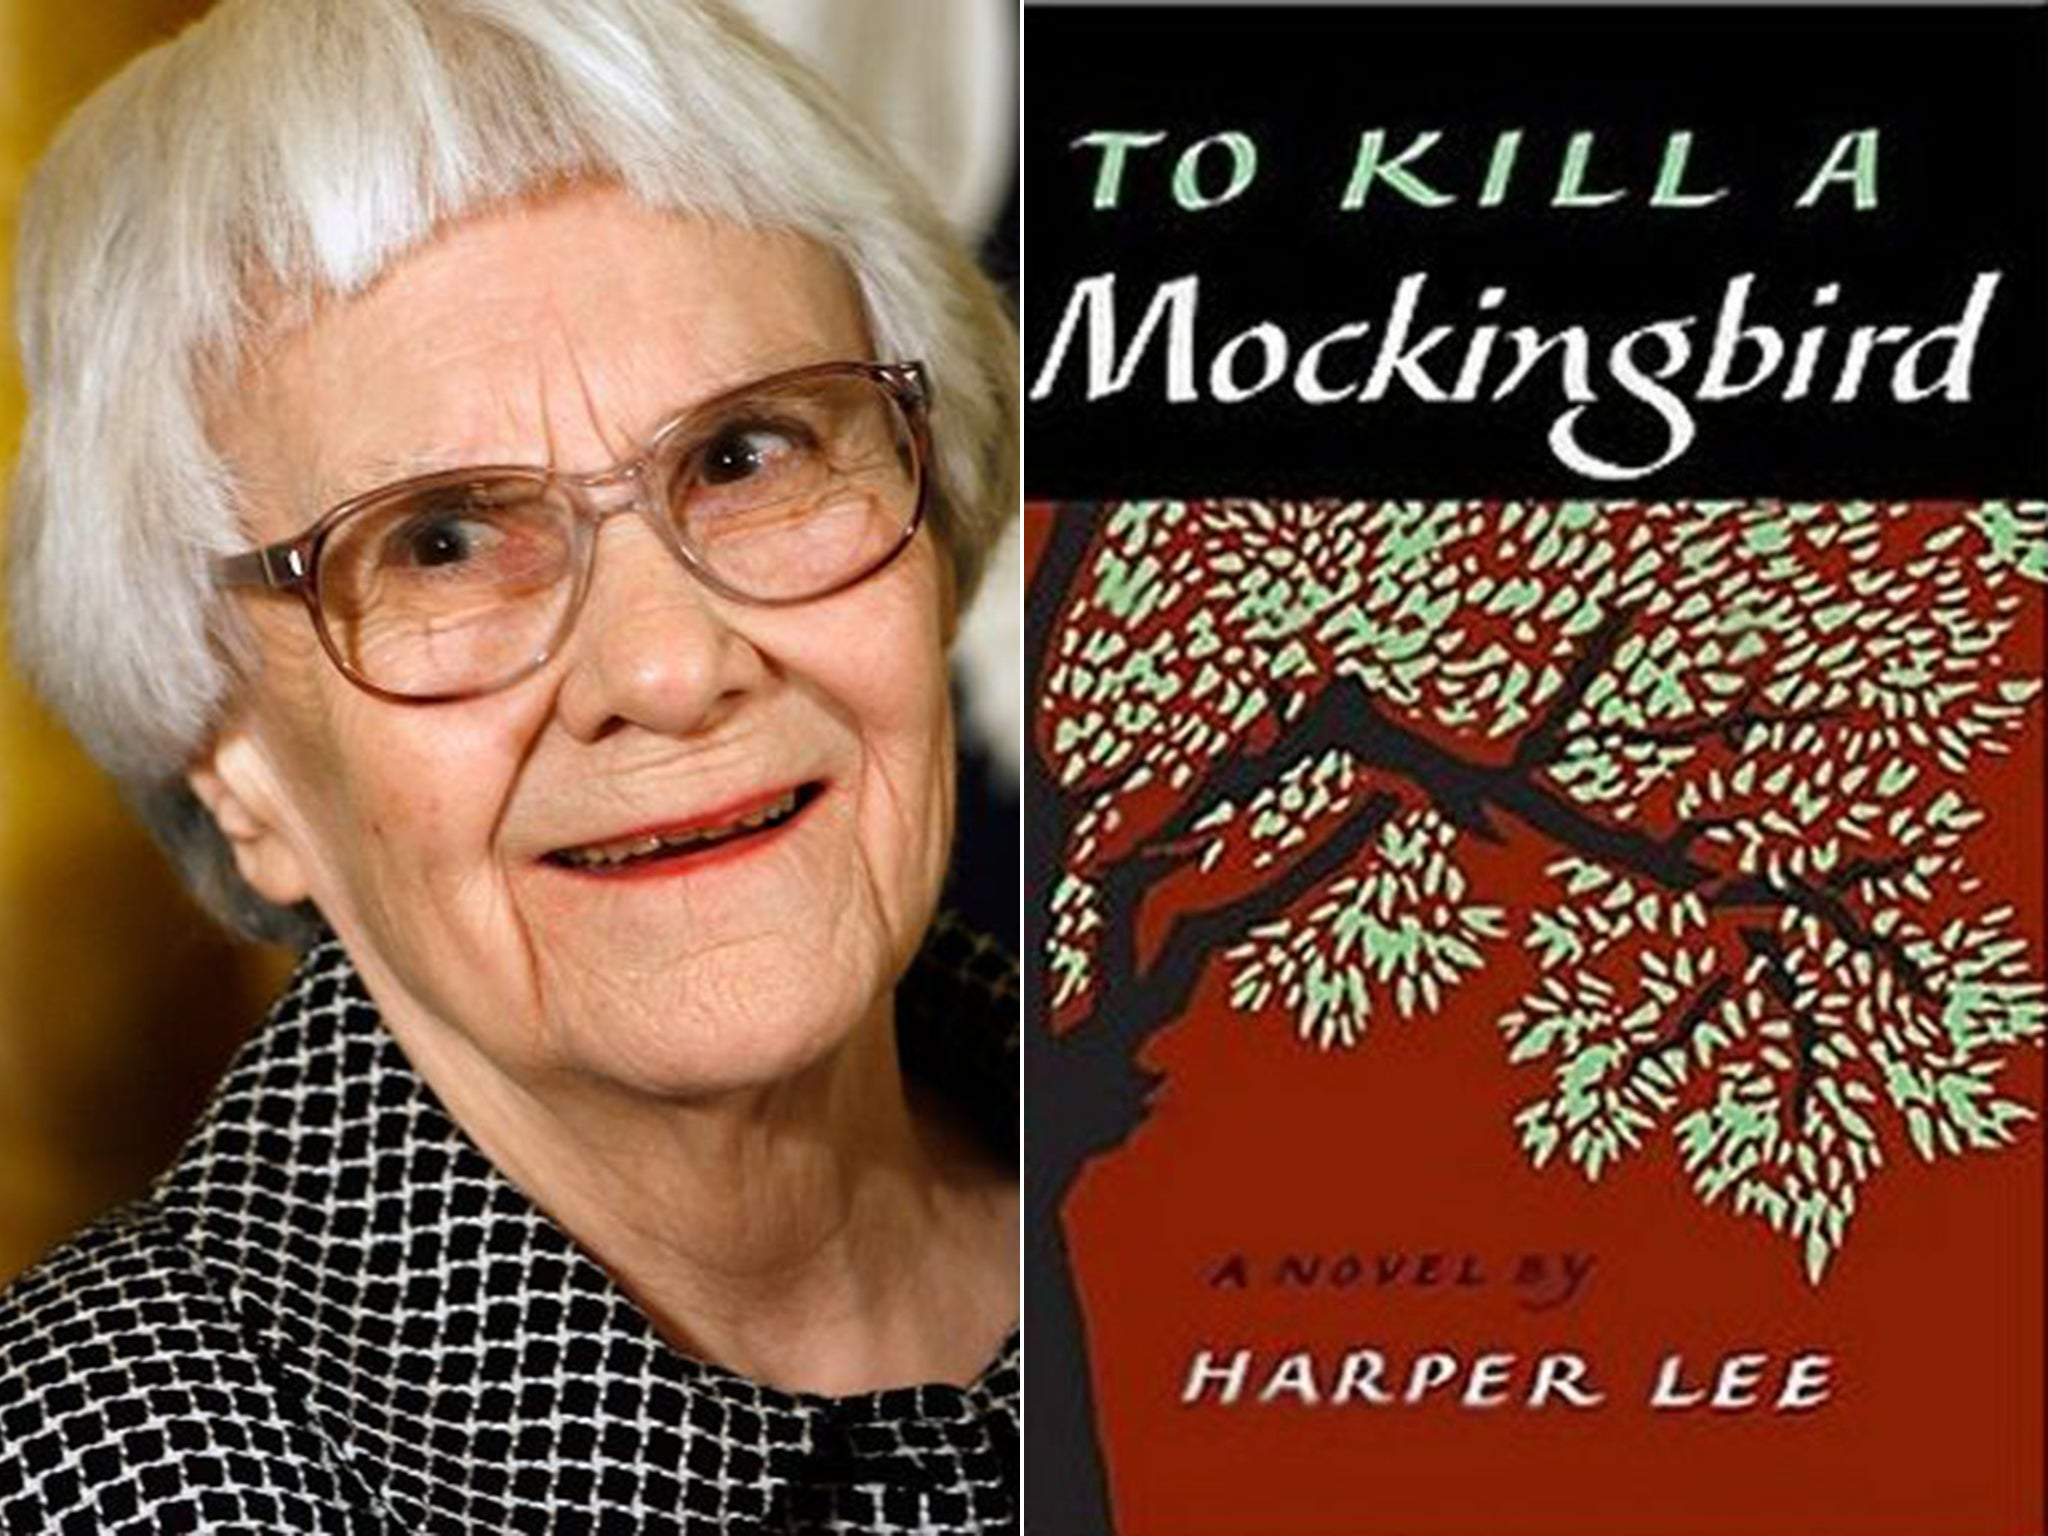 harper lee essays friend of harper lee remembers the most to kill a mockingbird thesis ideas